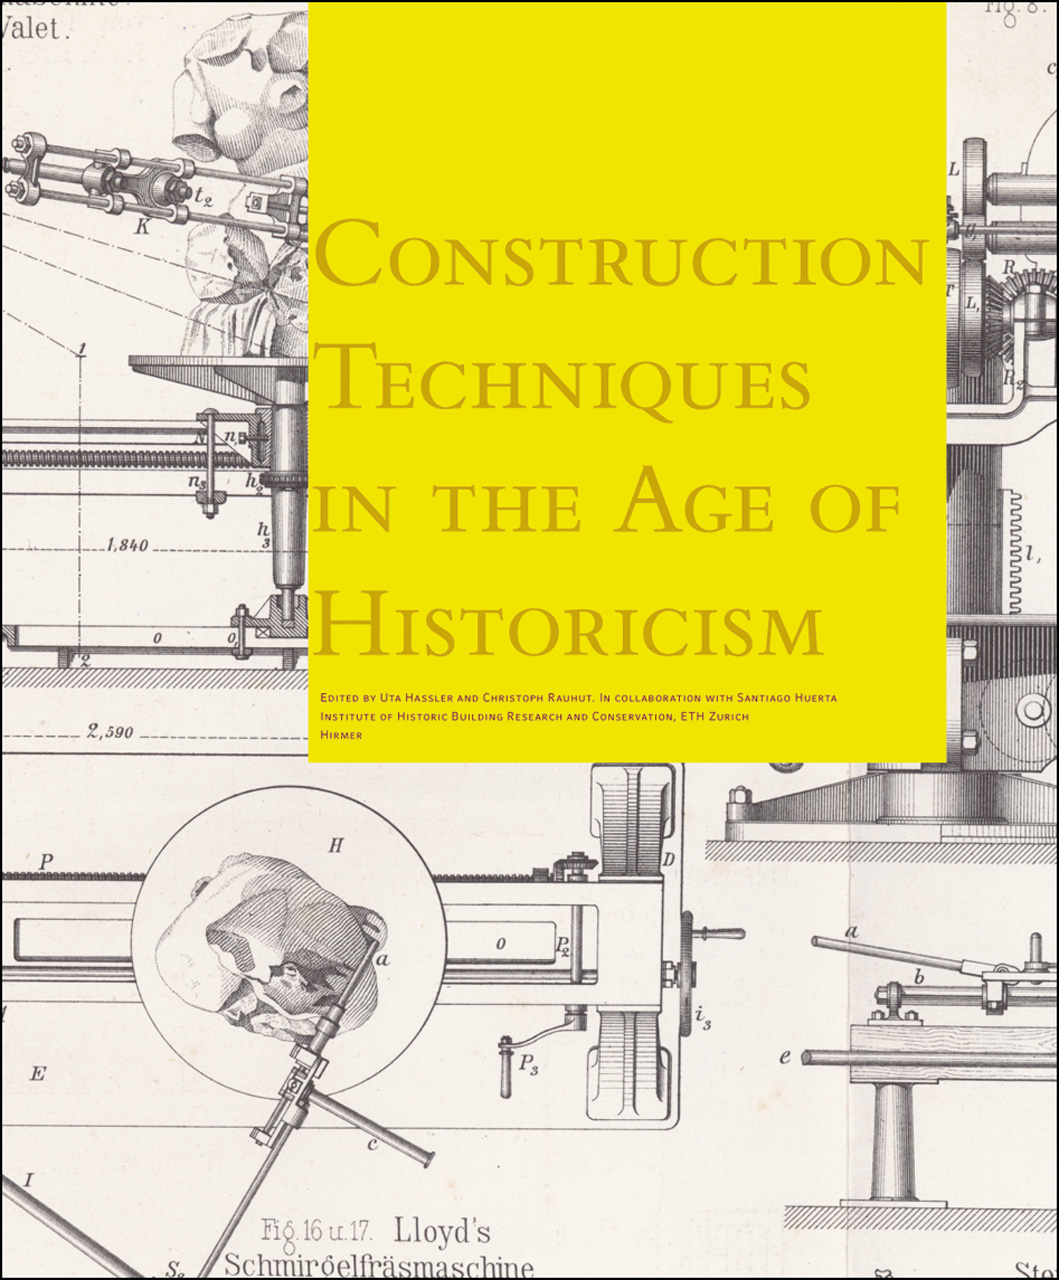 Construction Techniques in the Age of Historicism